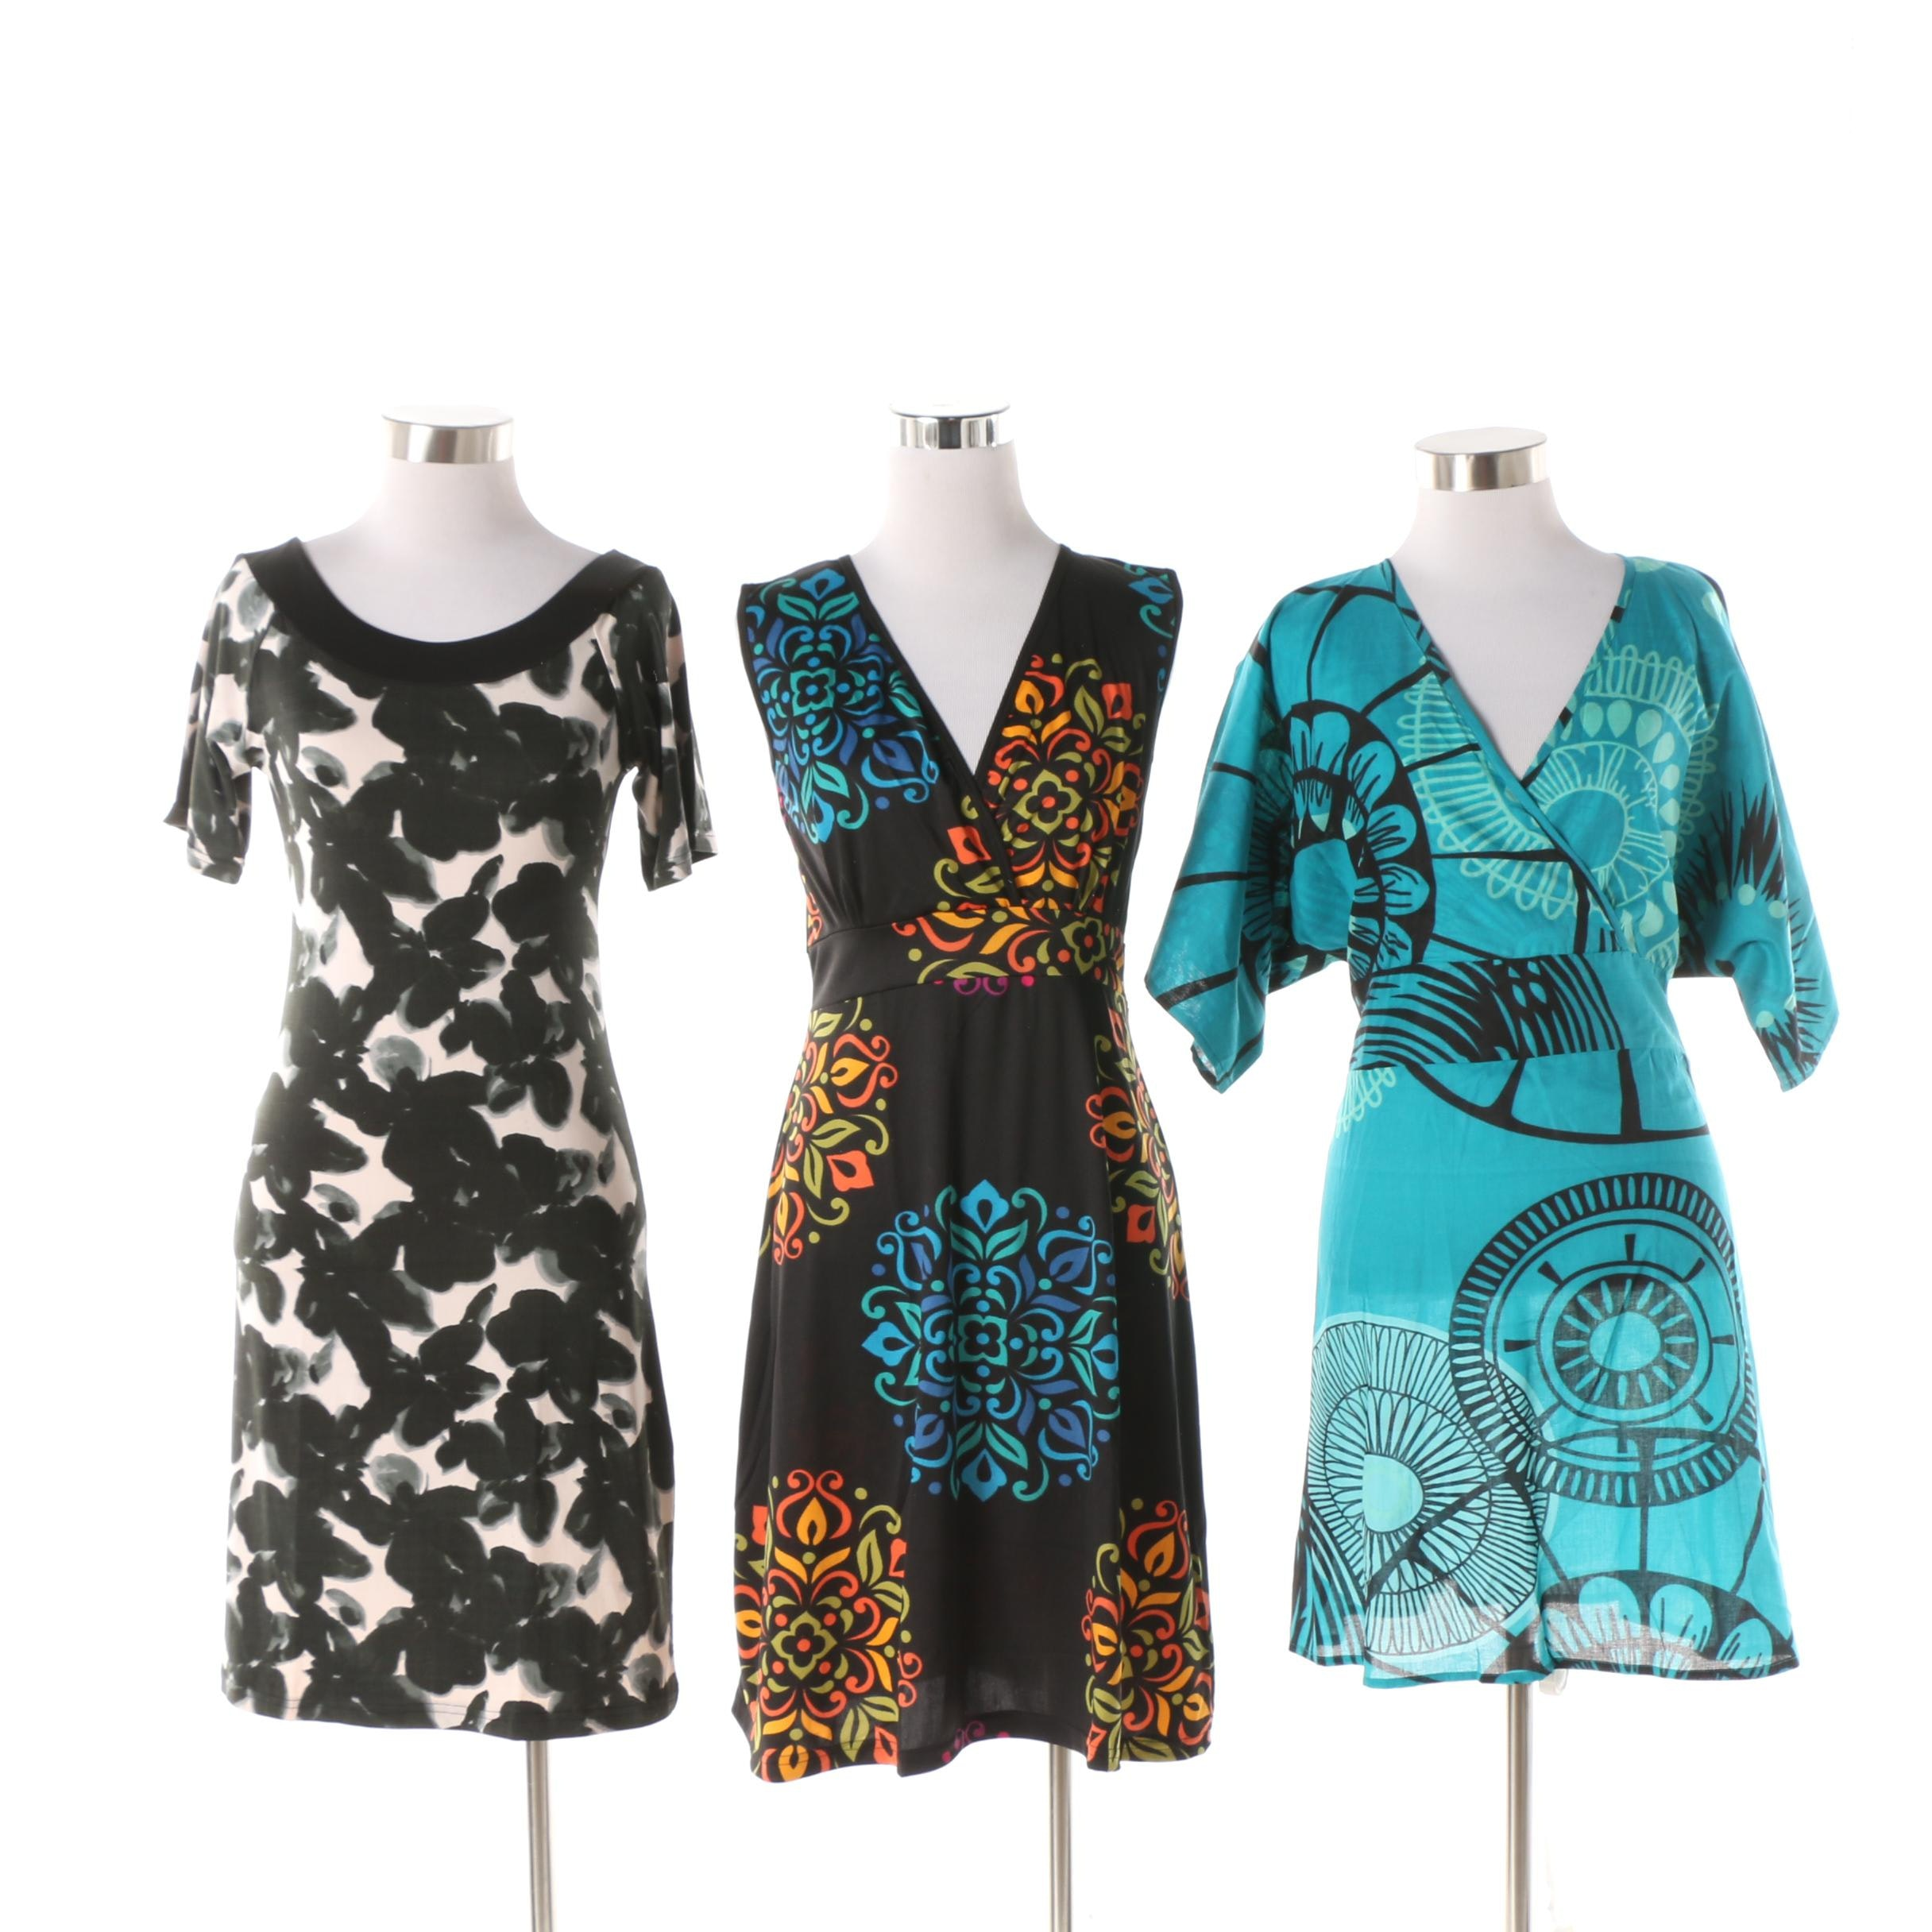 Aller Simplement Medallion, Mandala and Abstract Tunics